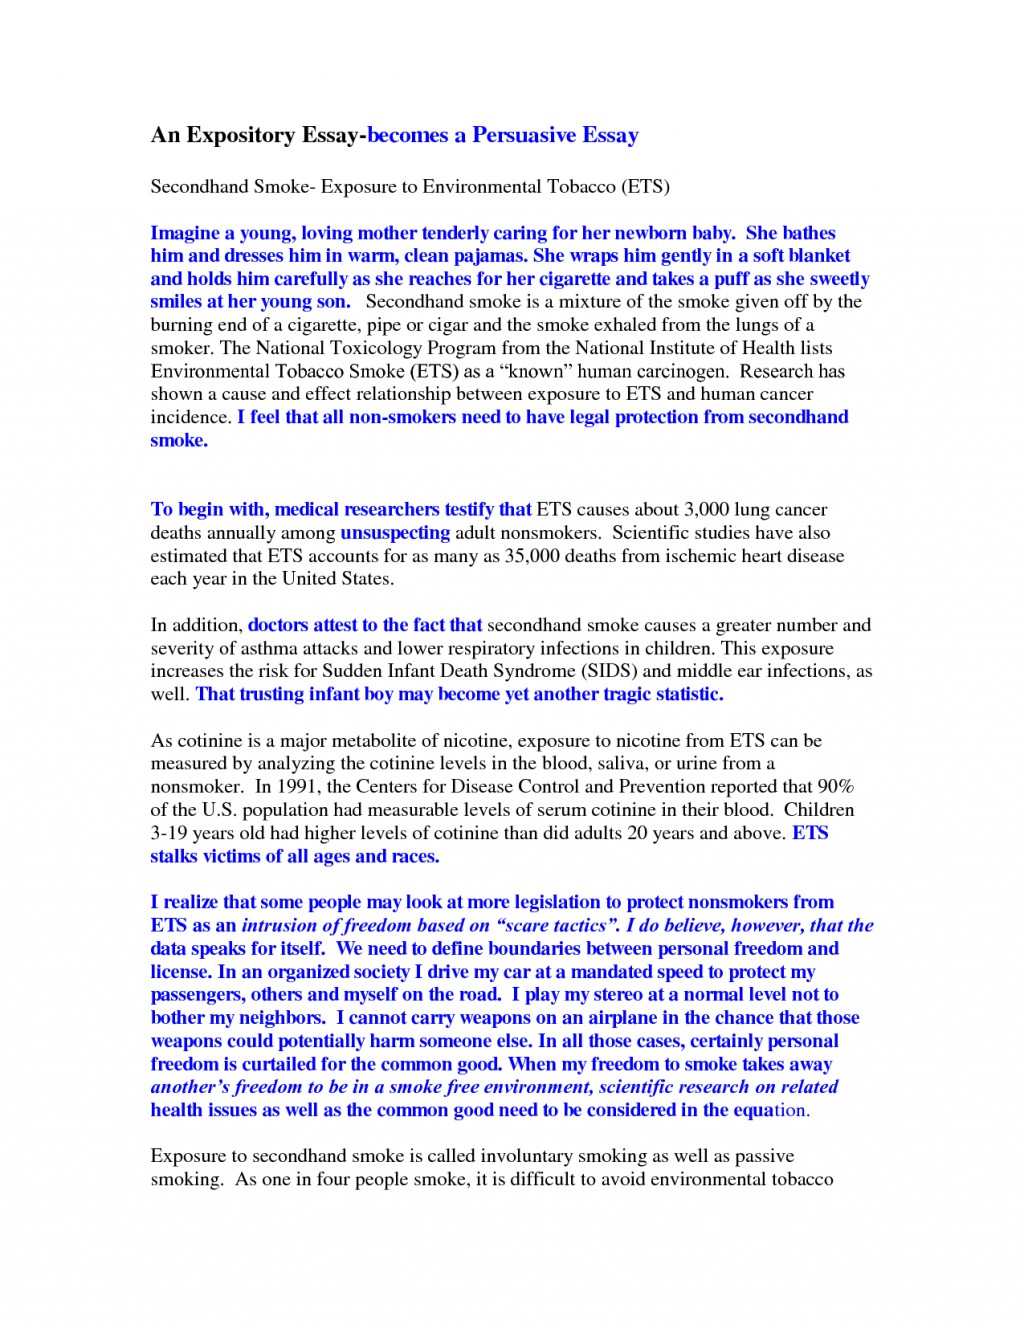 005 Whats An Expository Essay Fpucirorgs Phenomenal What Is Powerpoint What's Example Does Consist Of Large